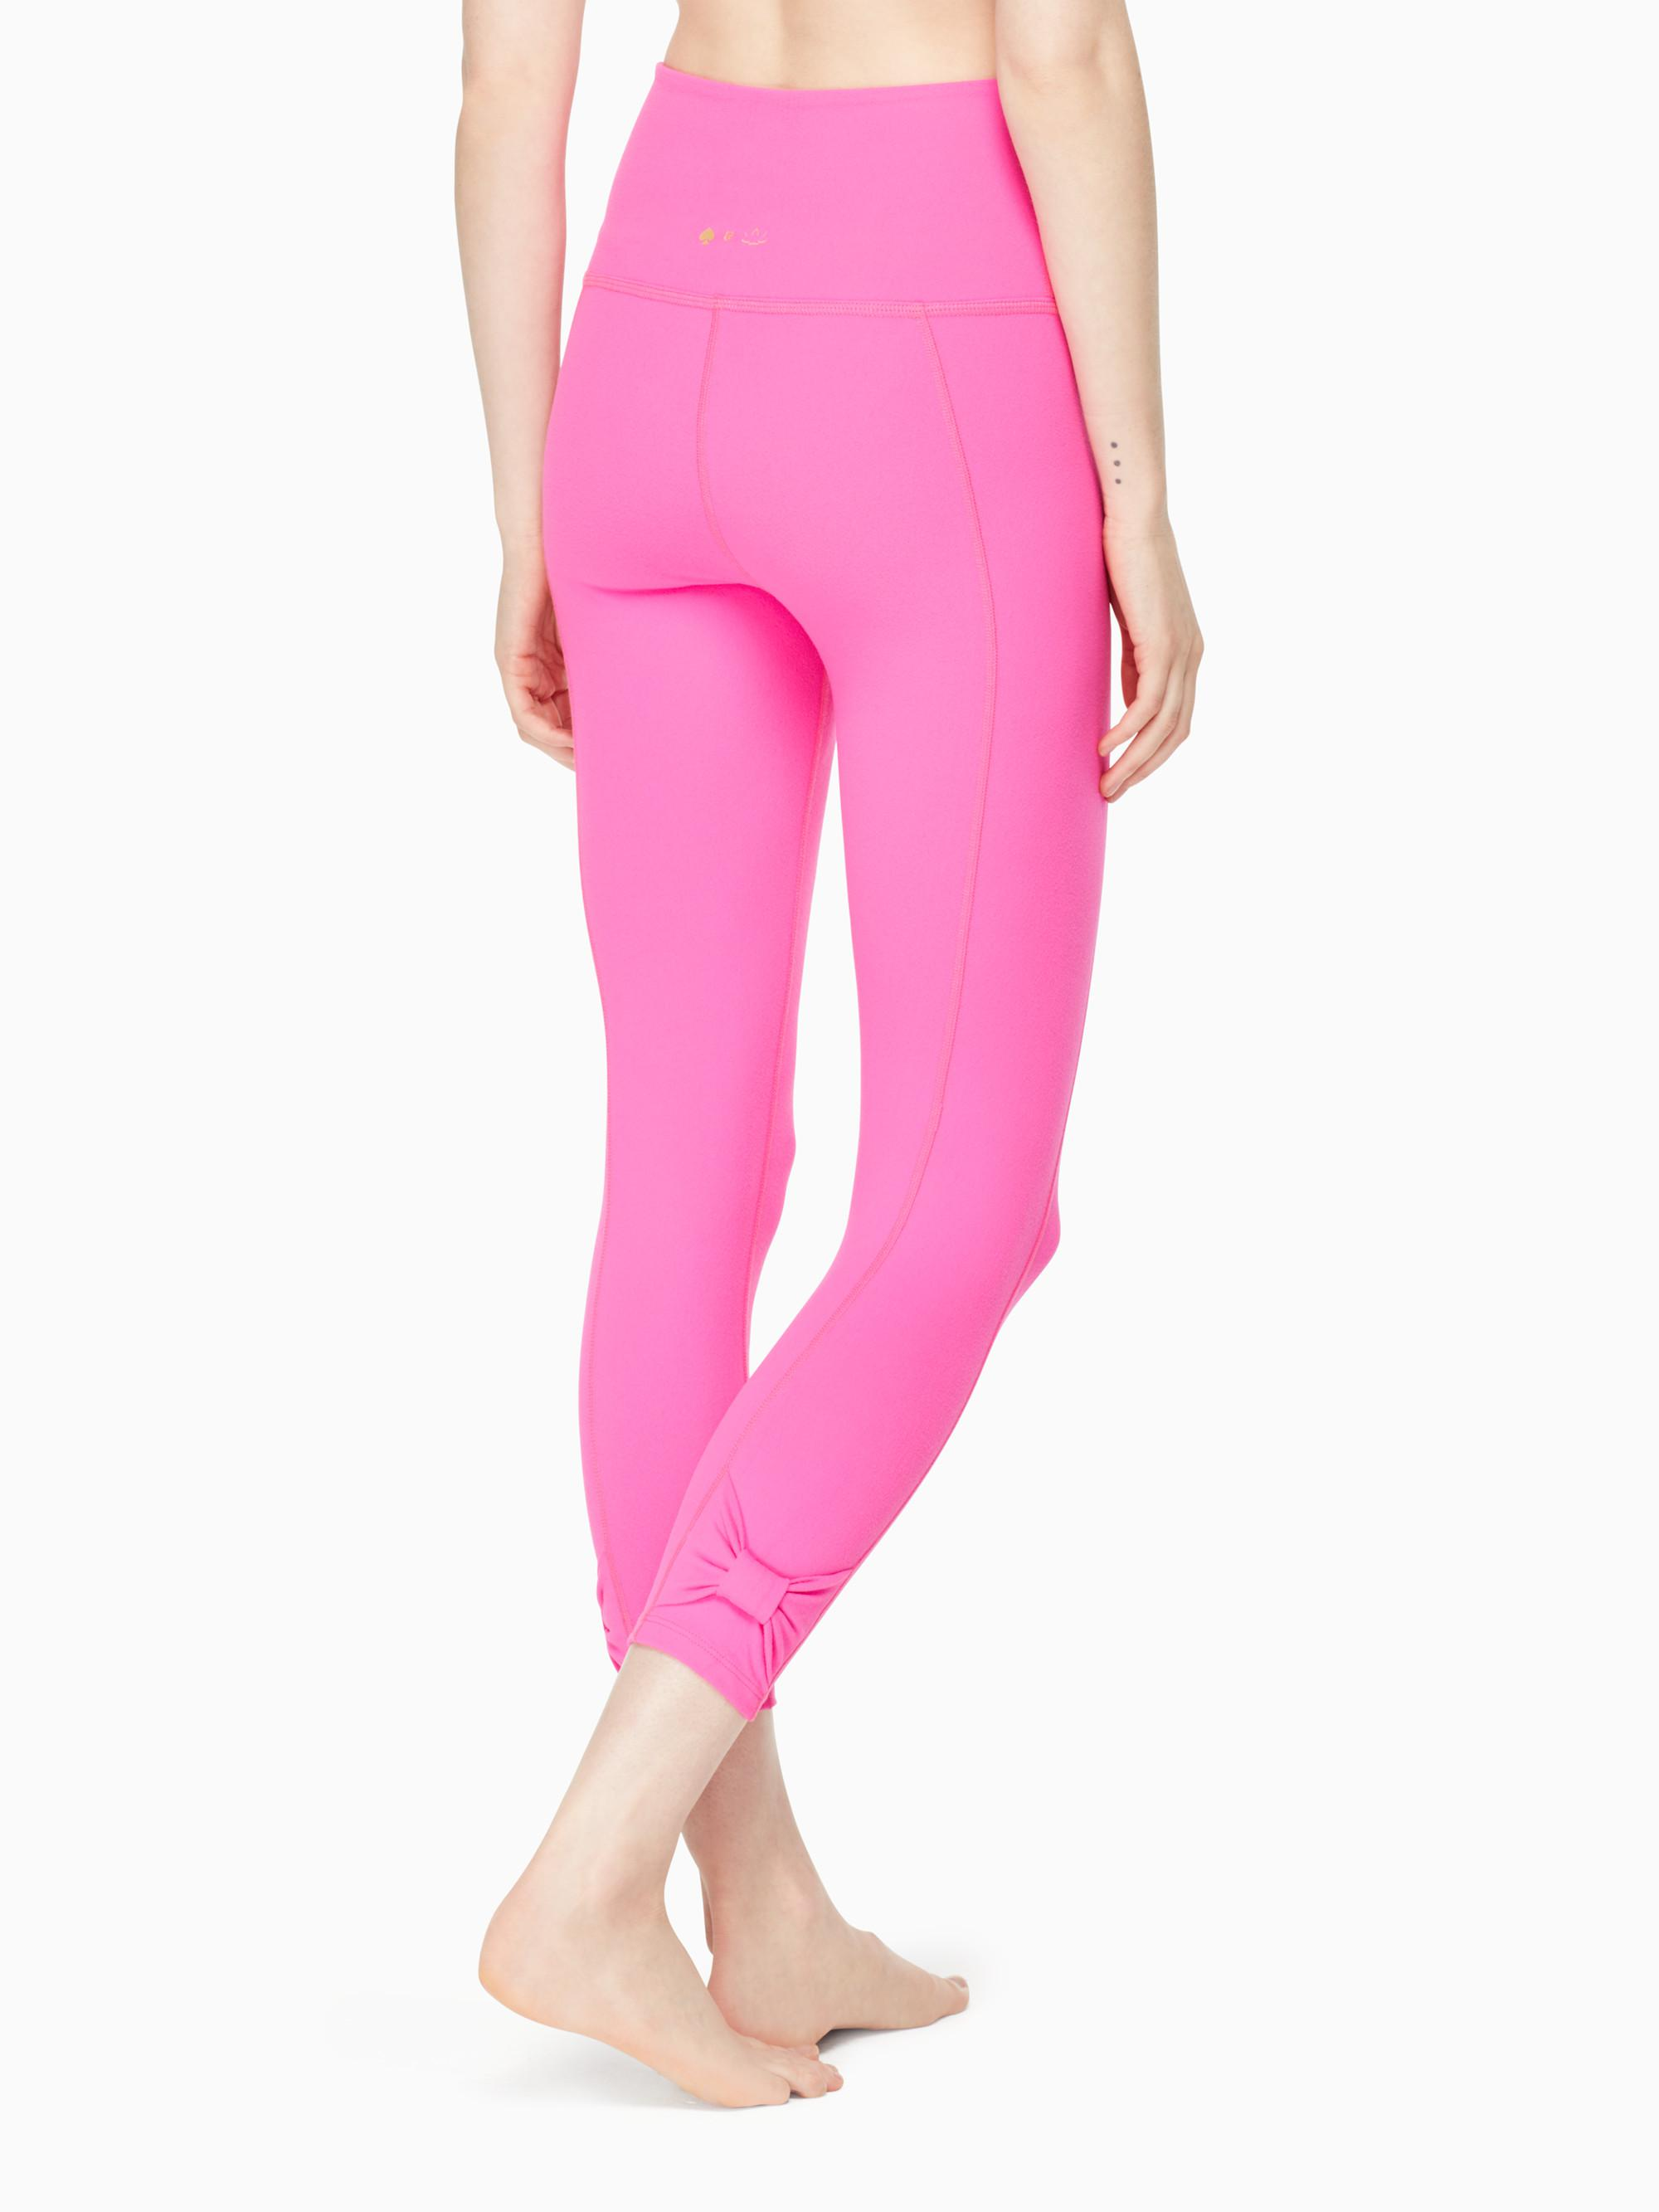 497d3df541de1c Kate Spade Cinched Side Bow High Waisted Capri Legging in Pink - Lyst